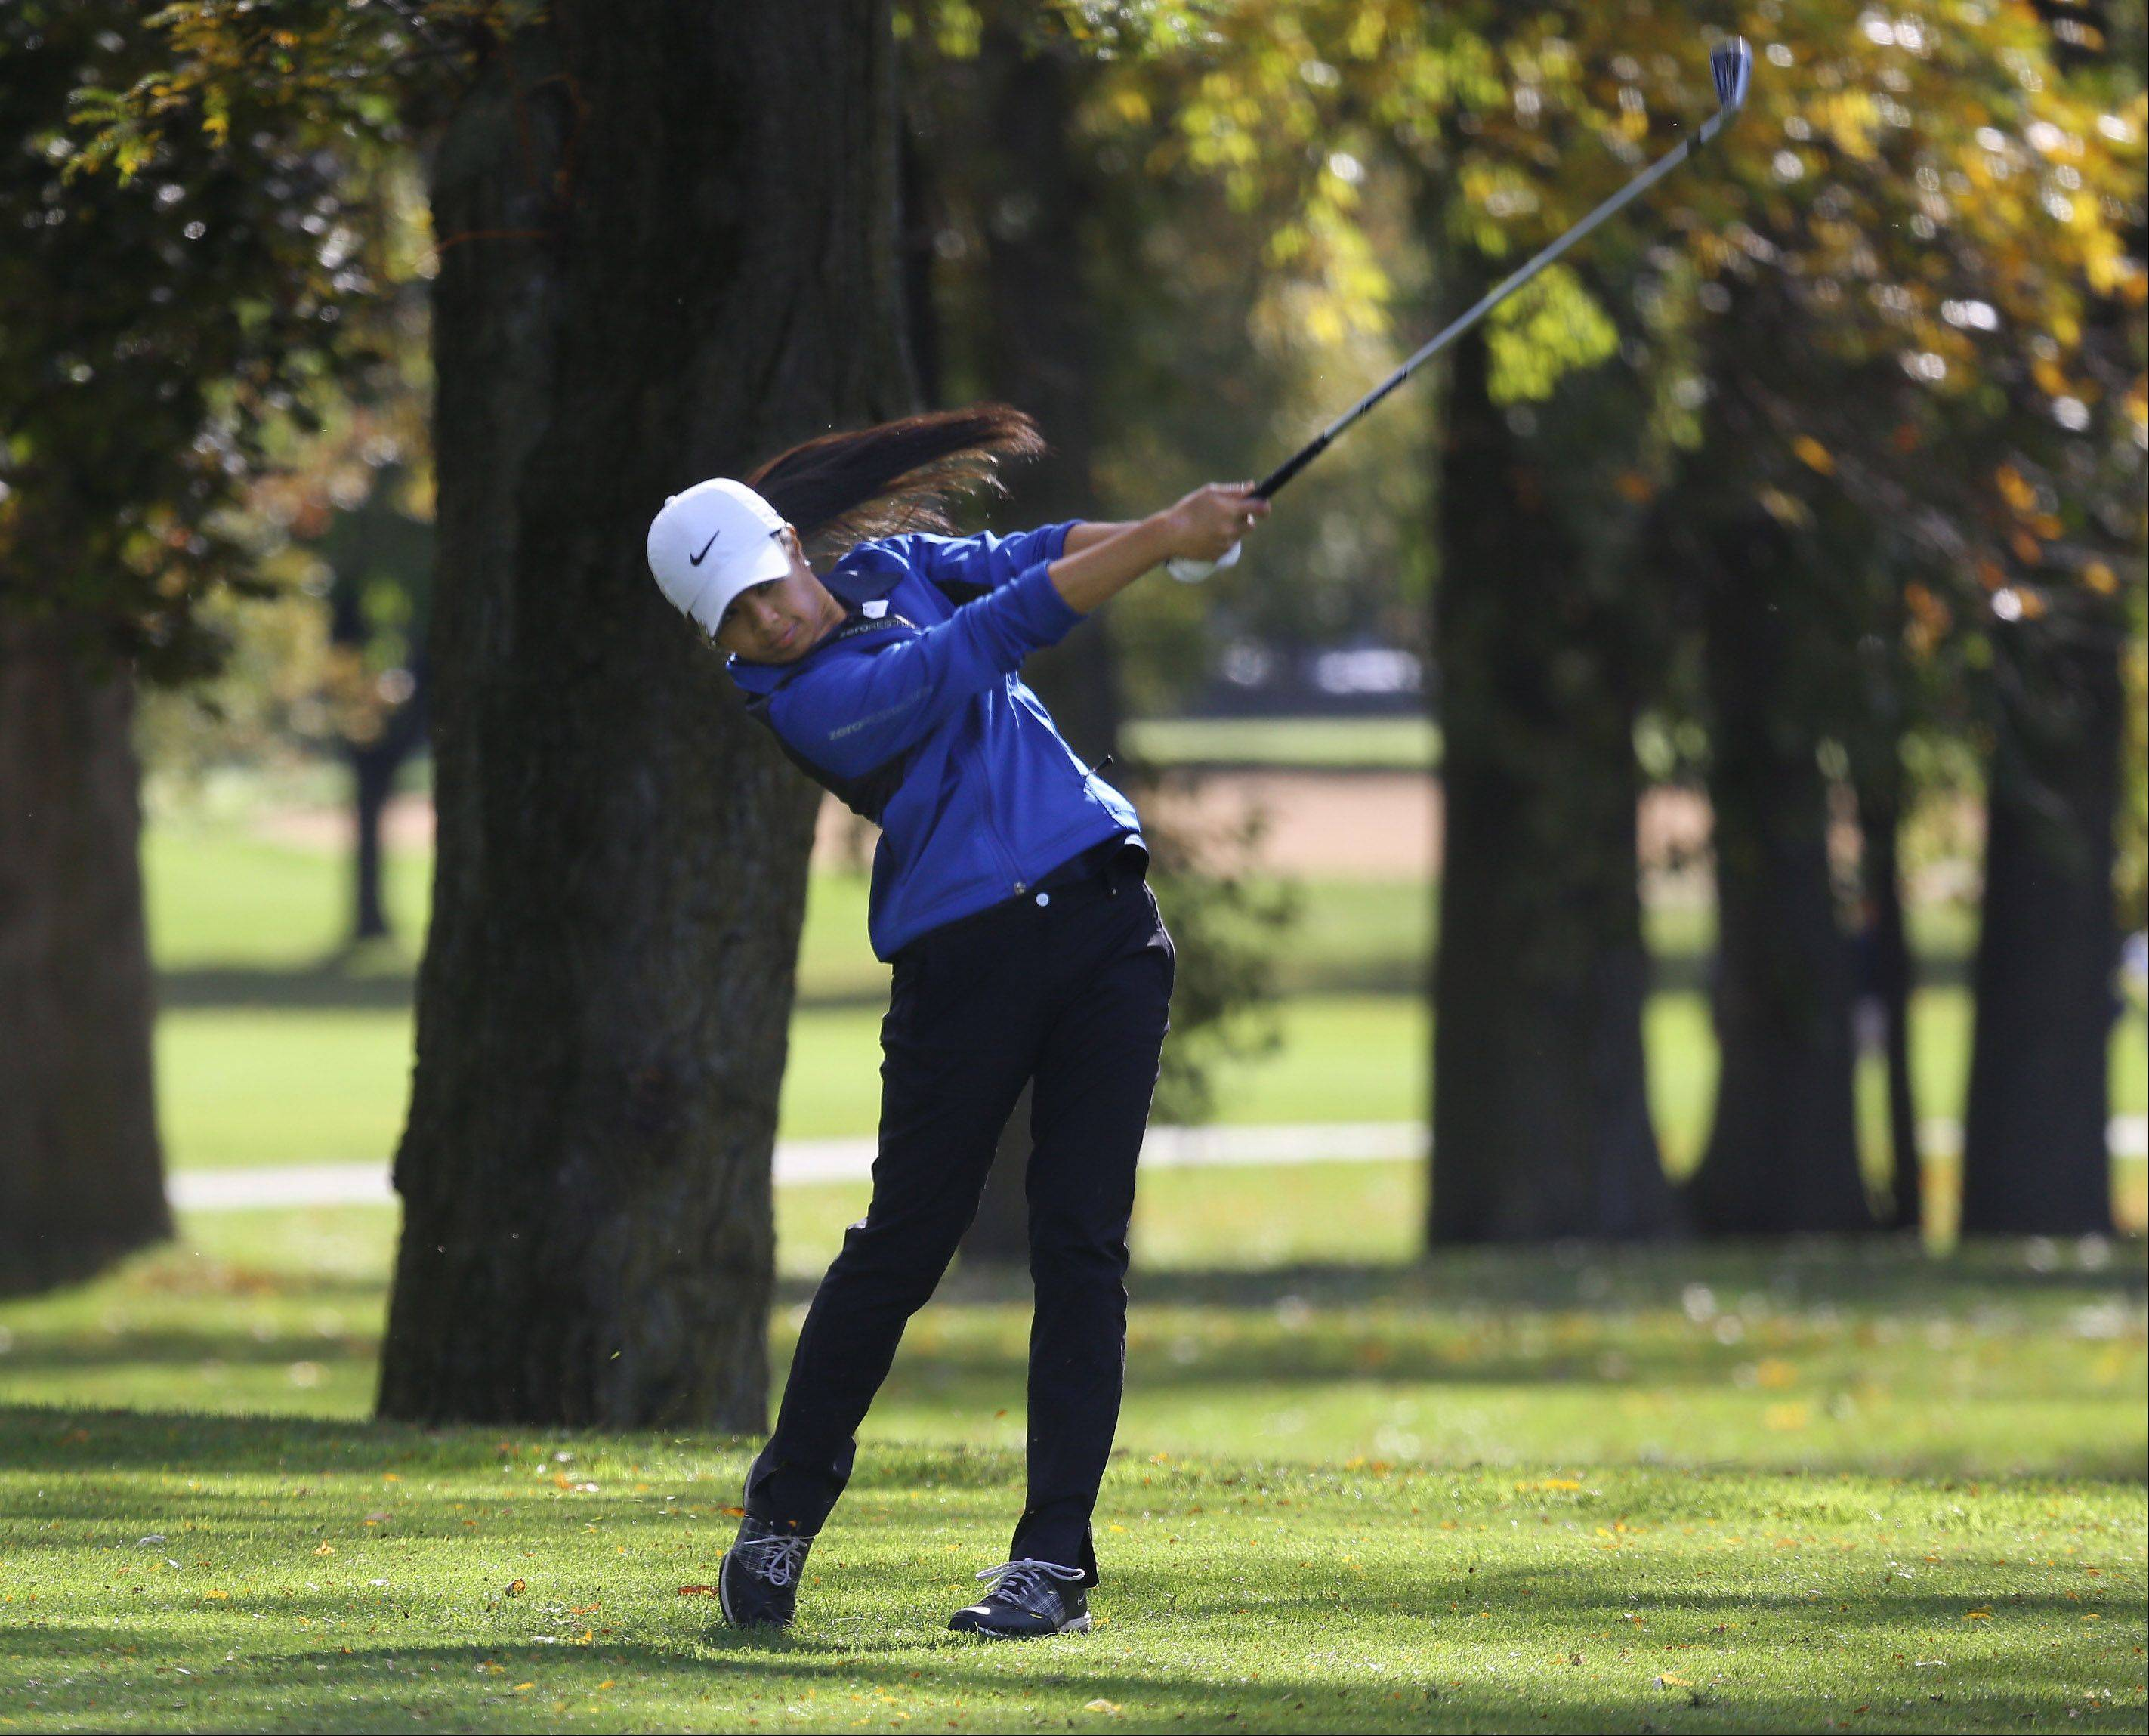 Gilbert R. Boucher II/gboucher@dailyherald.comBuffalo Grove golfer Amber Guiao tees off on the 4th hole during the Buffalo Grove sectional Monday at the Buffalo Grove Golf Course.